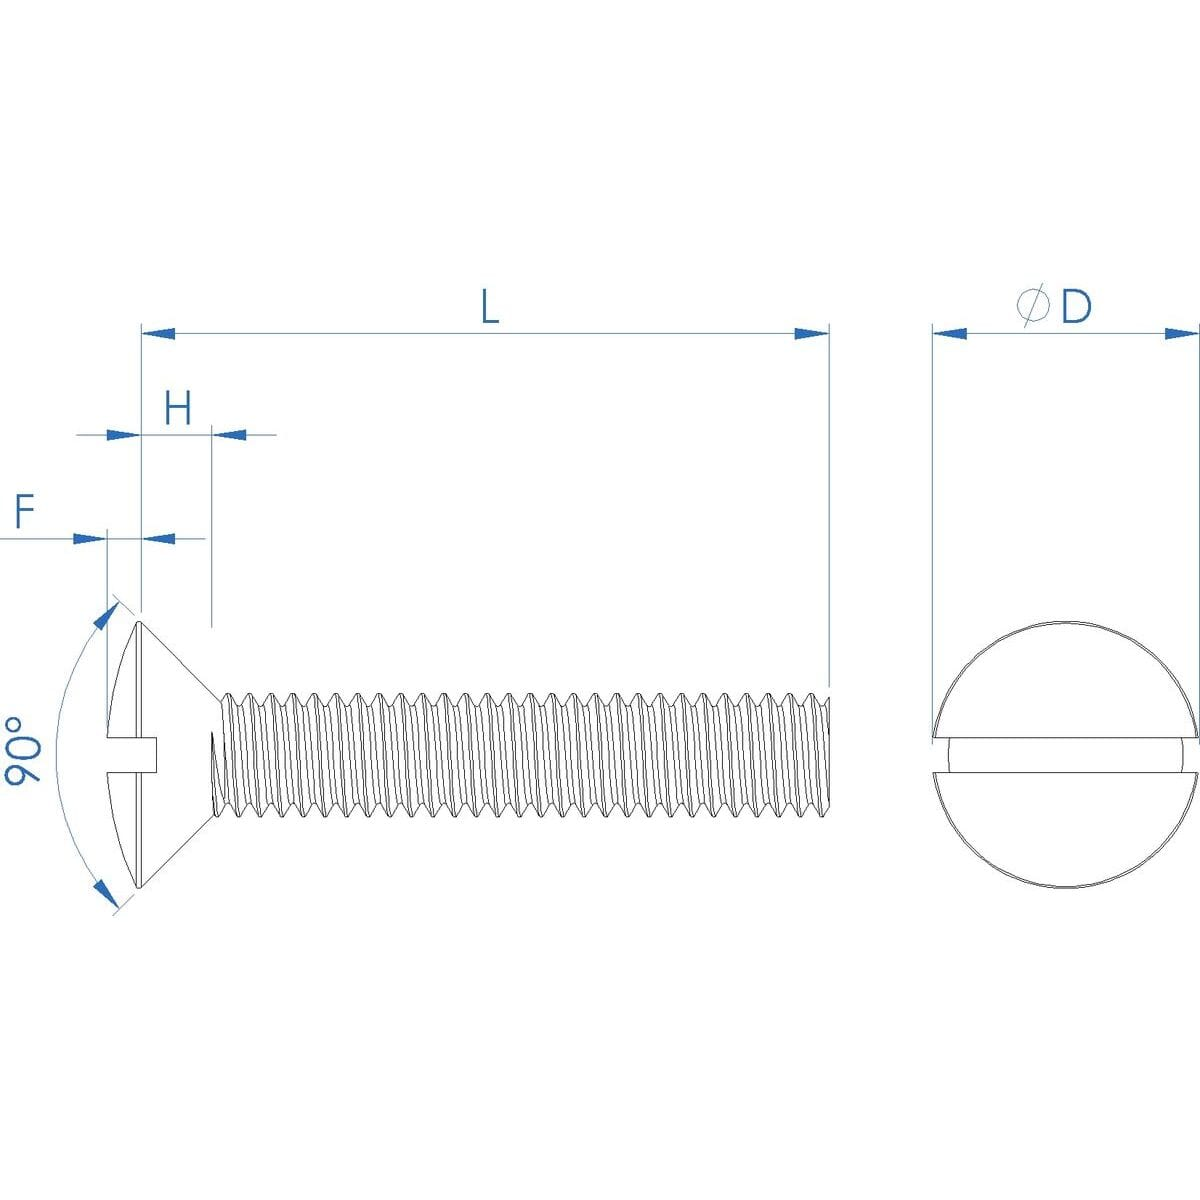 M10 x 50mm Raised Slotted Countersunk Screws (DIN 964) - Stainless Steel (A2) Drawing